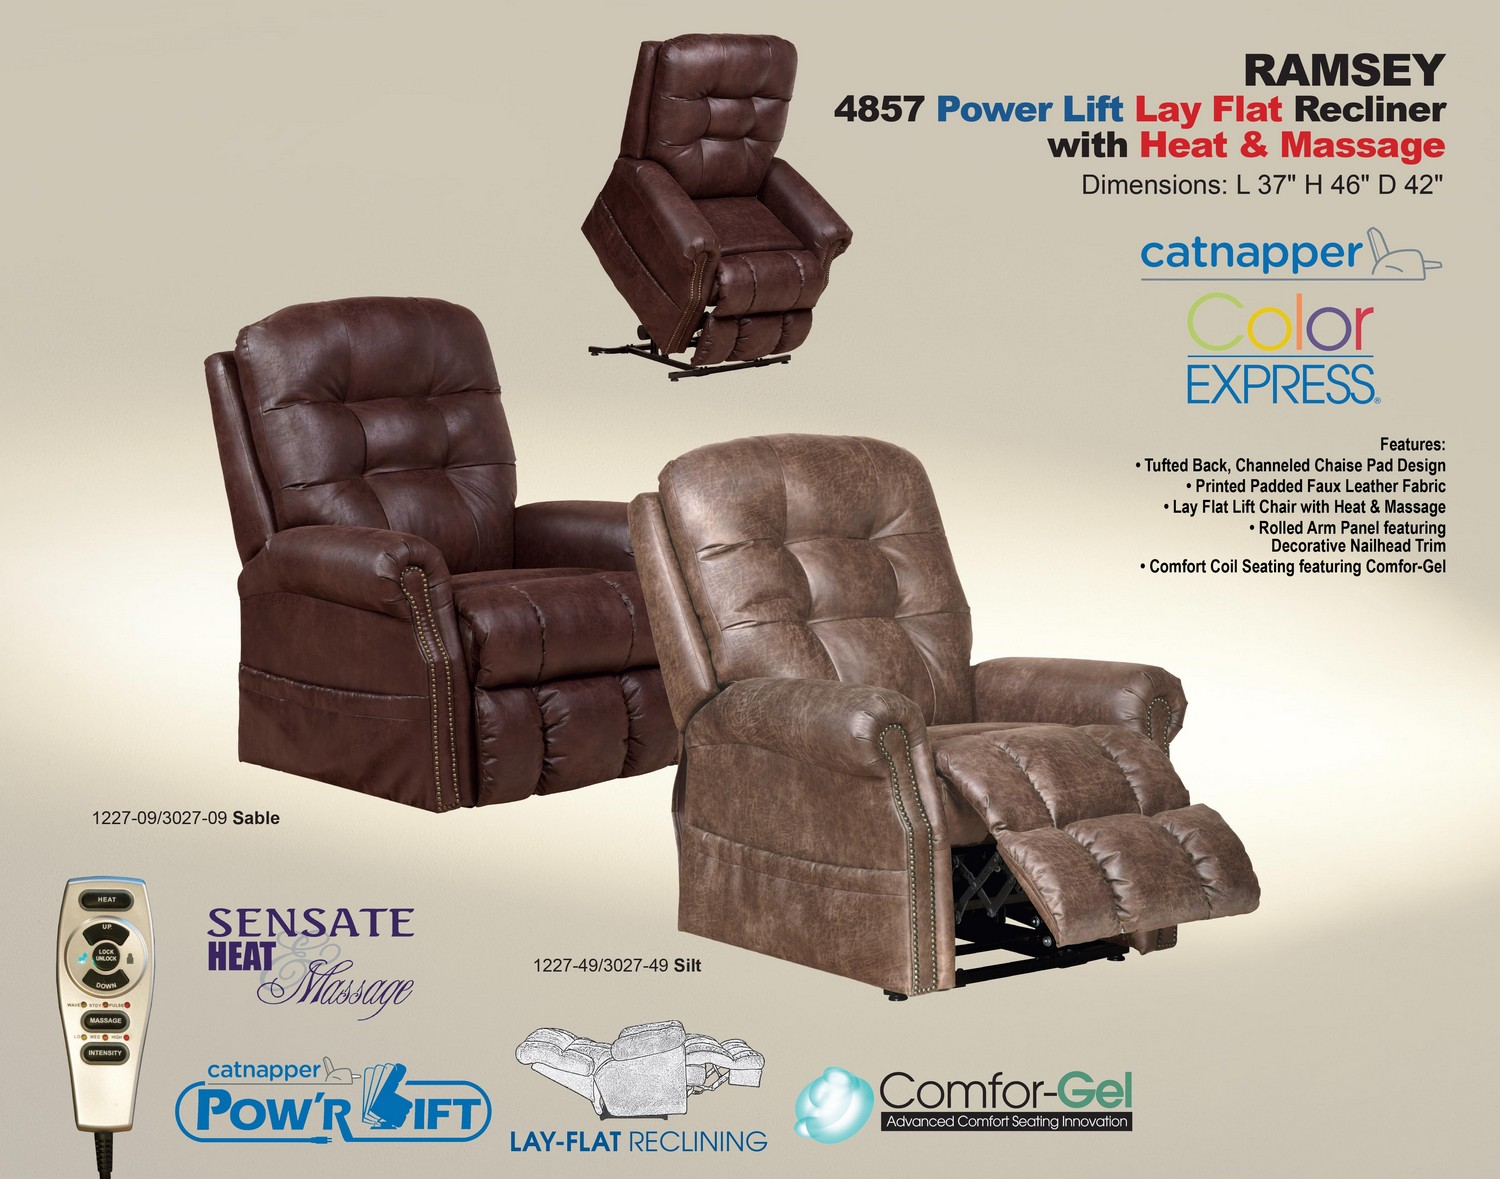 CatNapper Ramsey Power Lift Lay Flat Recliner with Heat and Massage - Silt